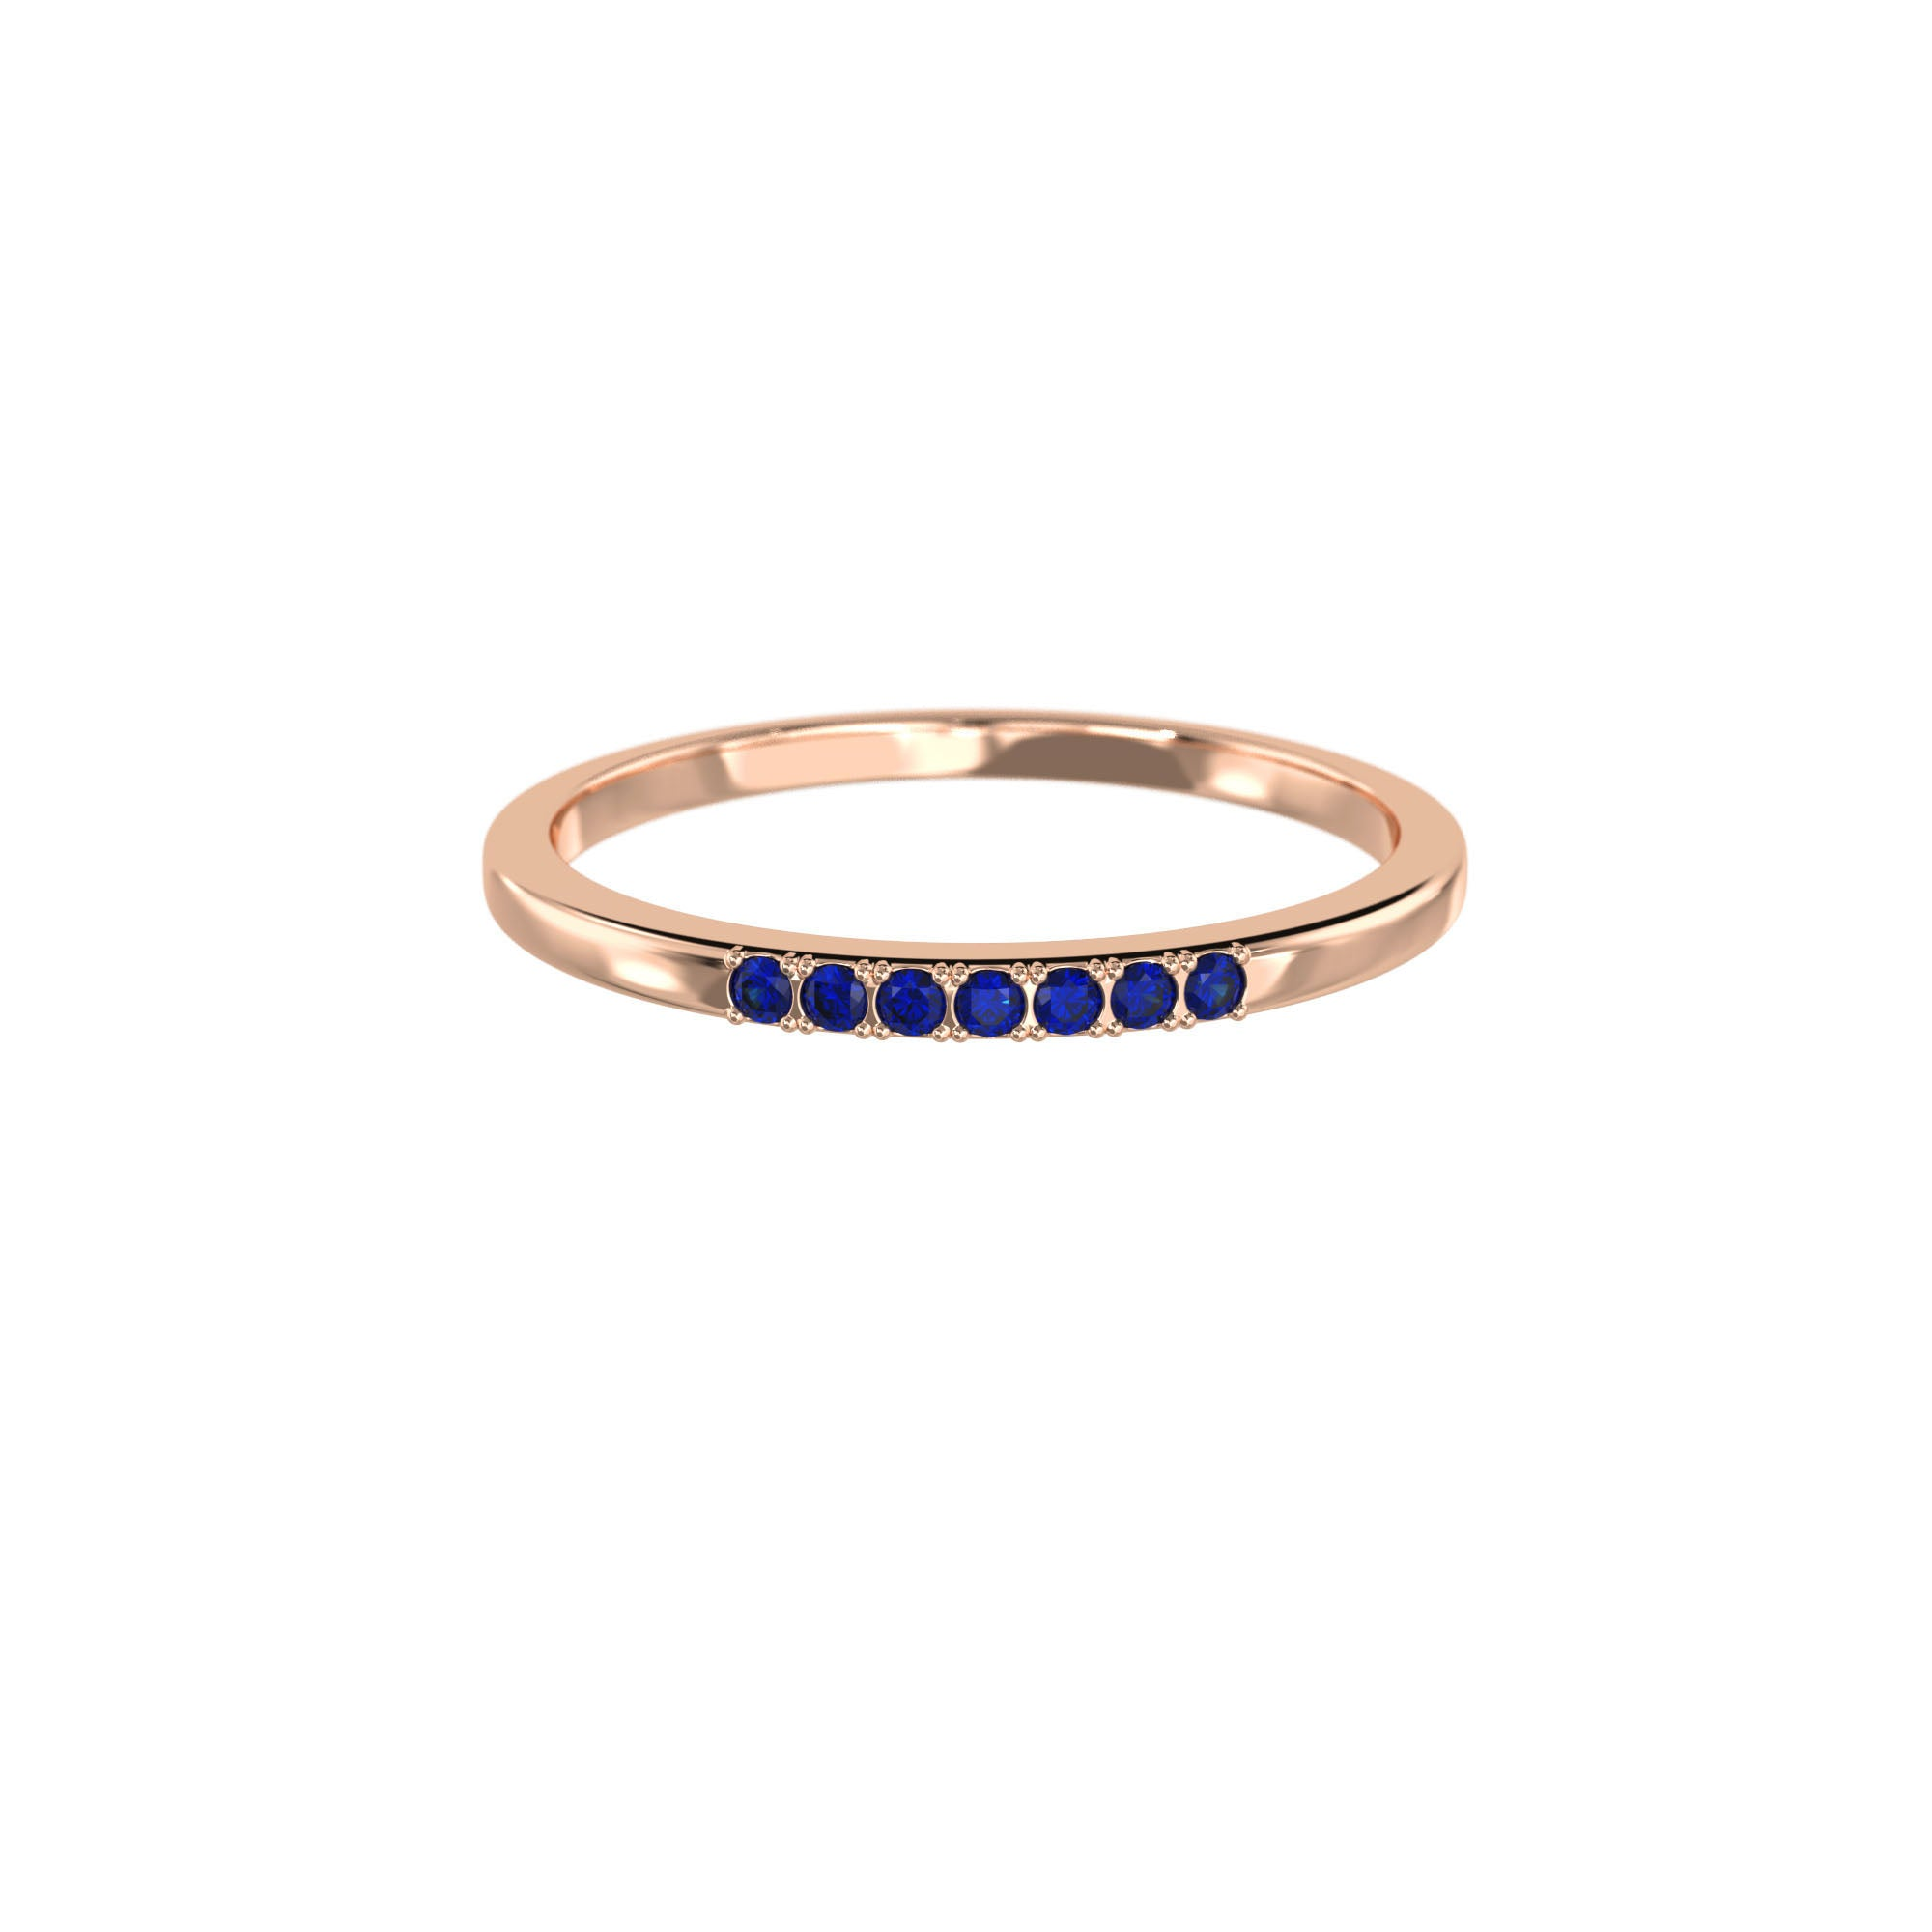 925 Silver Classic Series Ring - Esther (Sapphire) - Rose Gold Plated